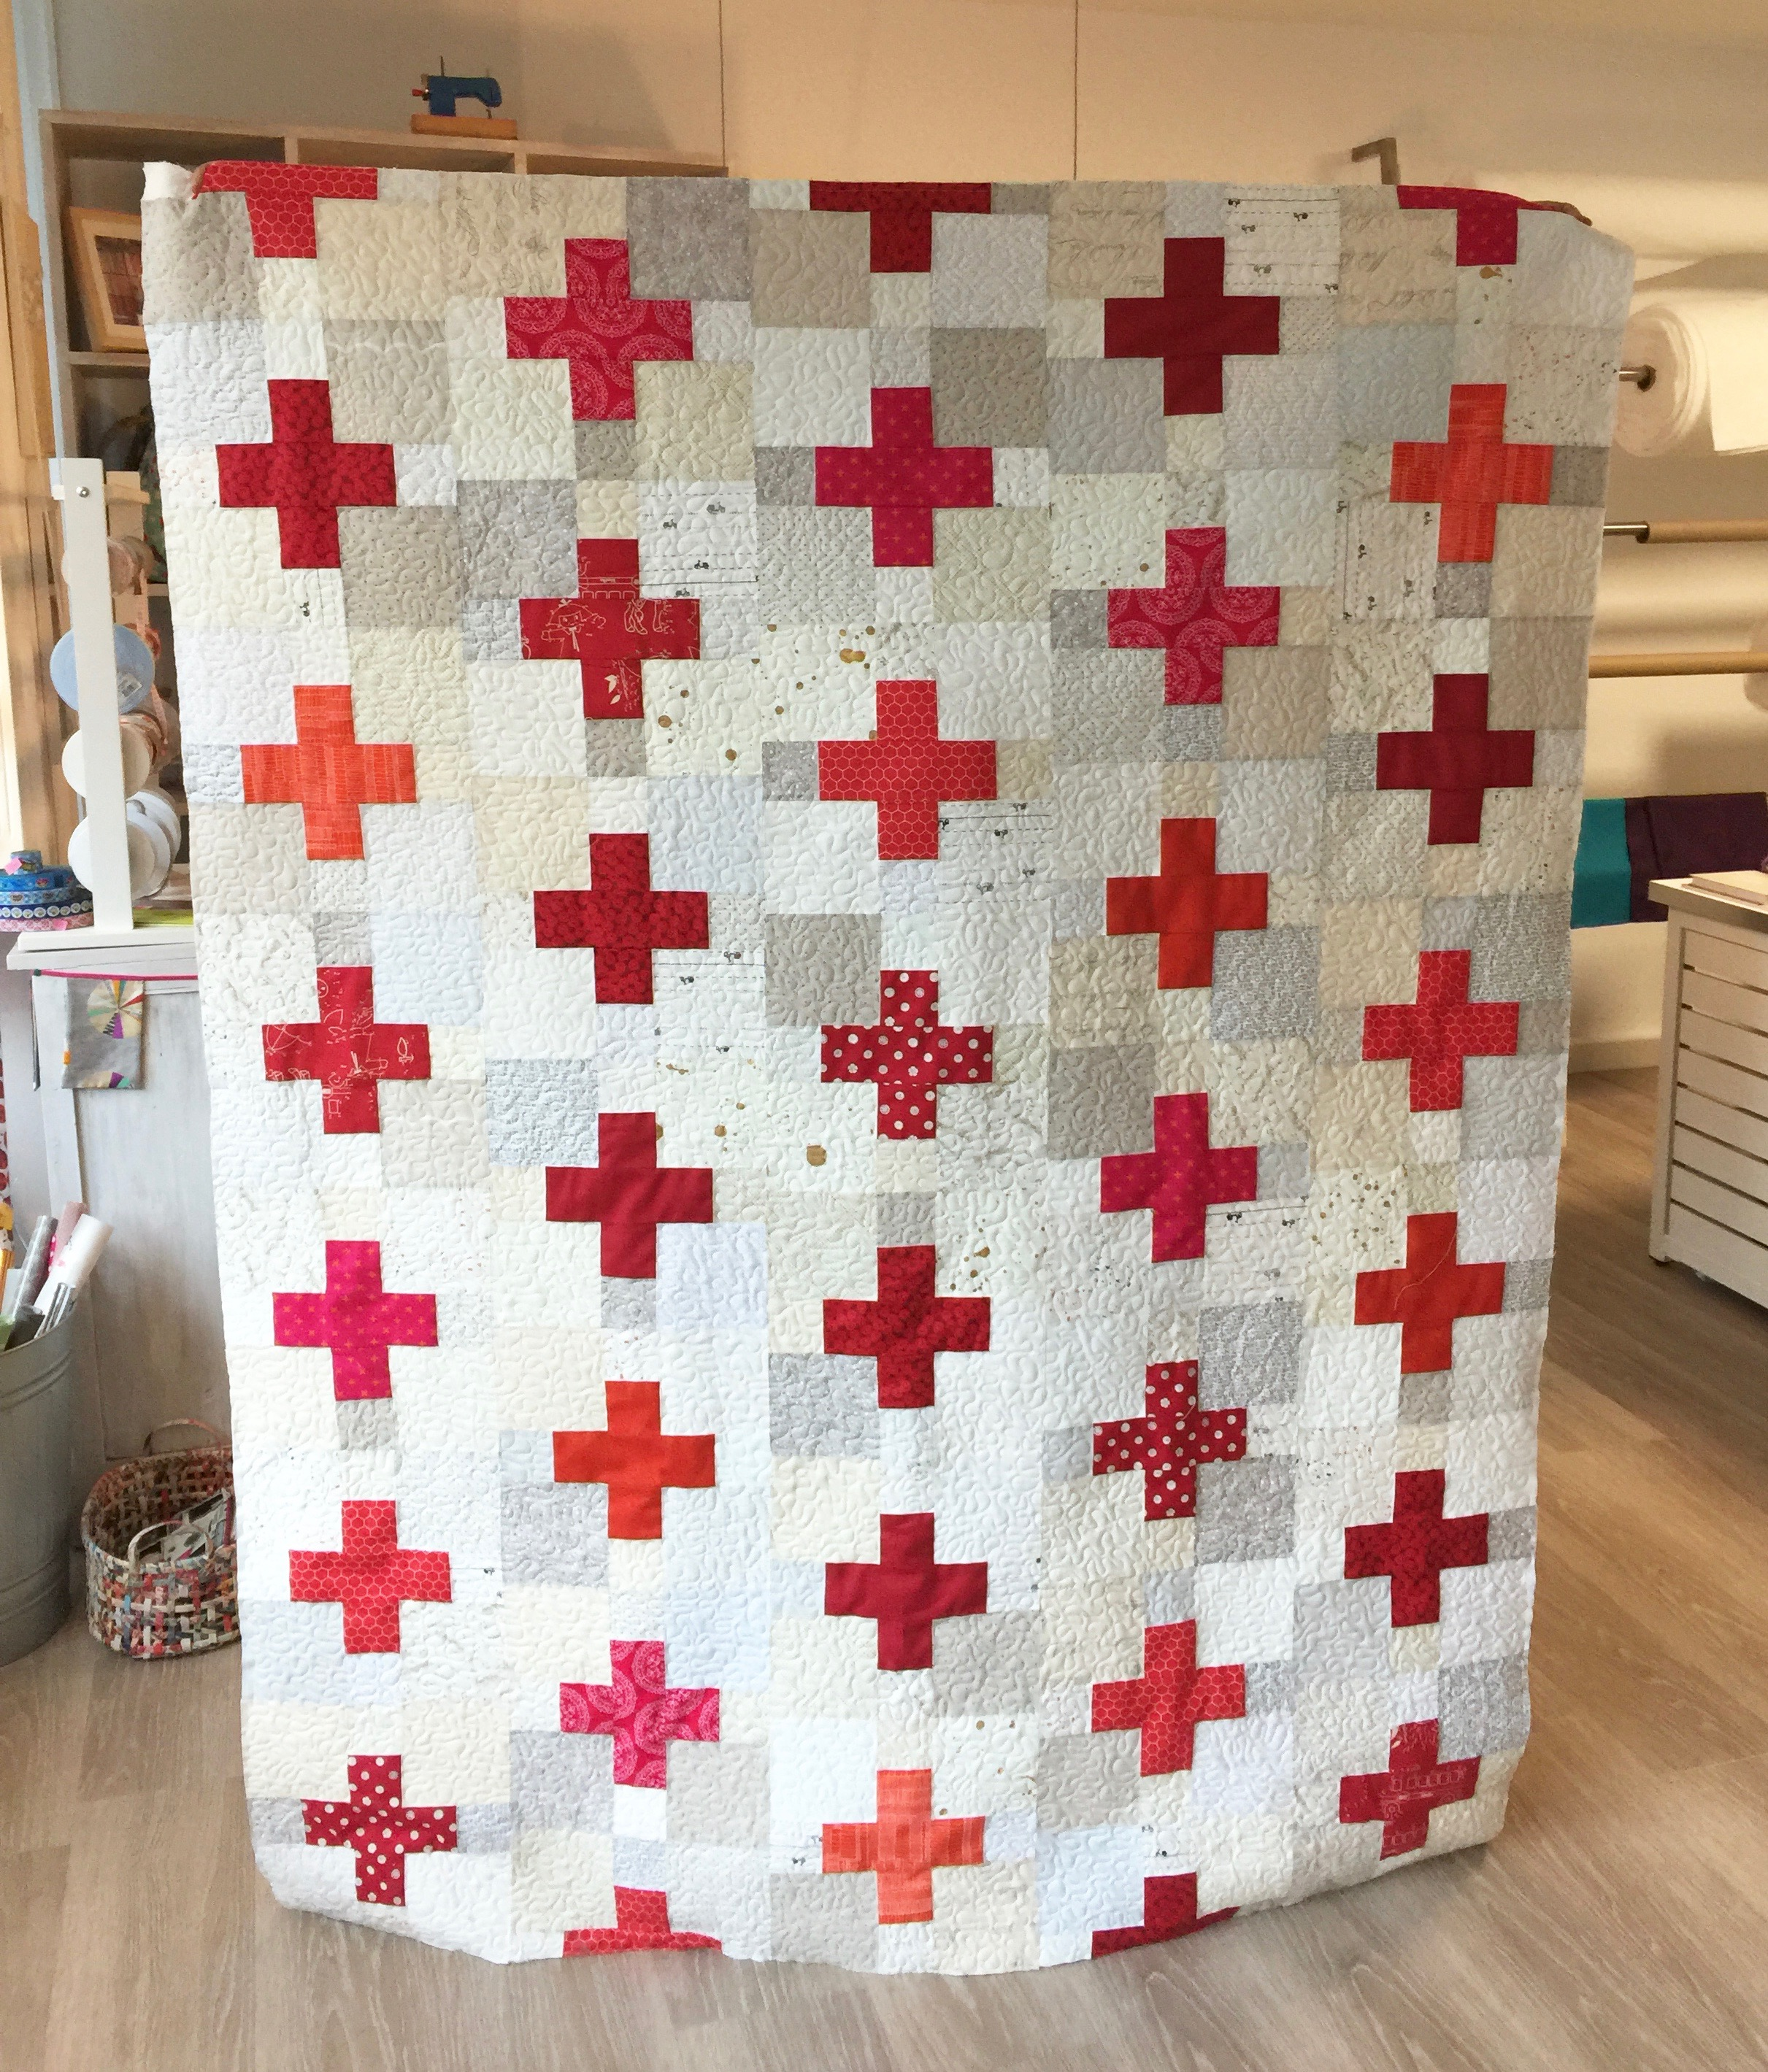 Quilt Annette Zehnpfennig Plus Cross